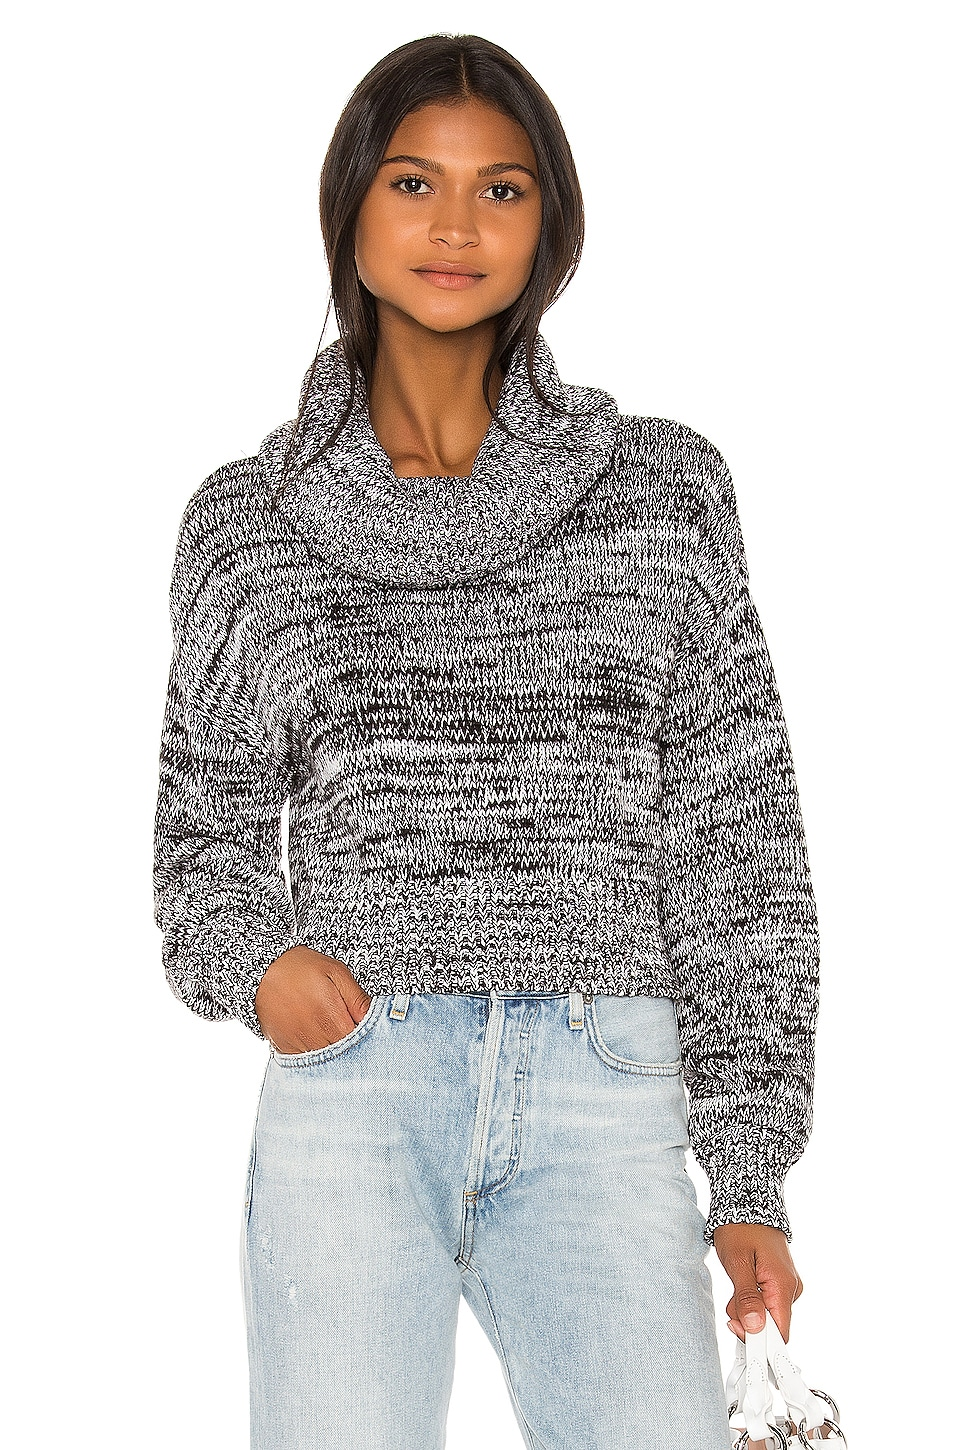 Lovers + Friends Paislee Pullover in Black & White